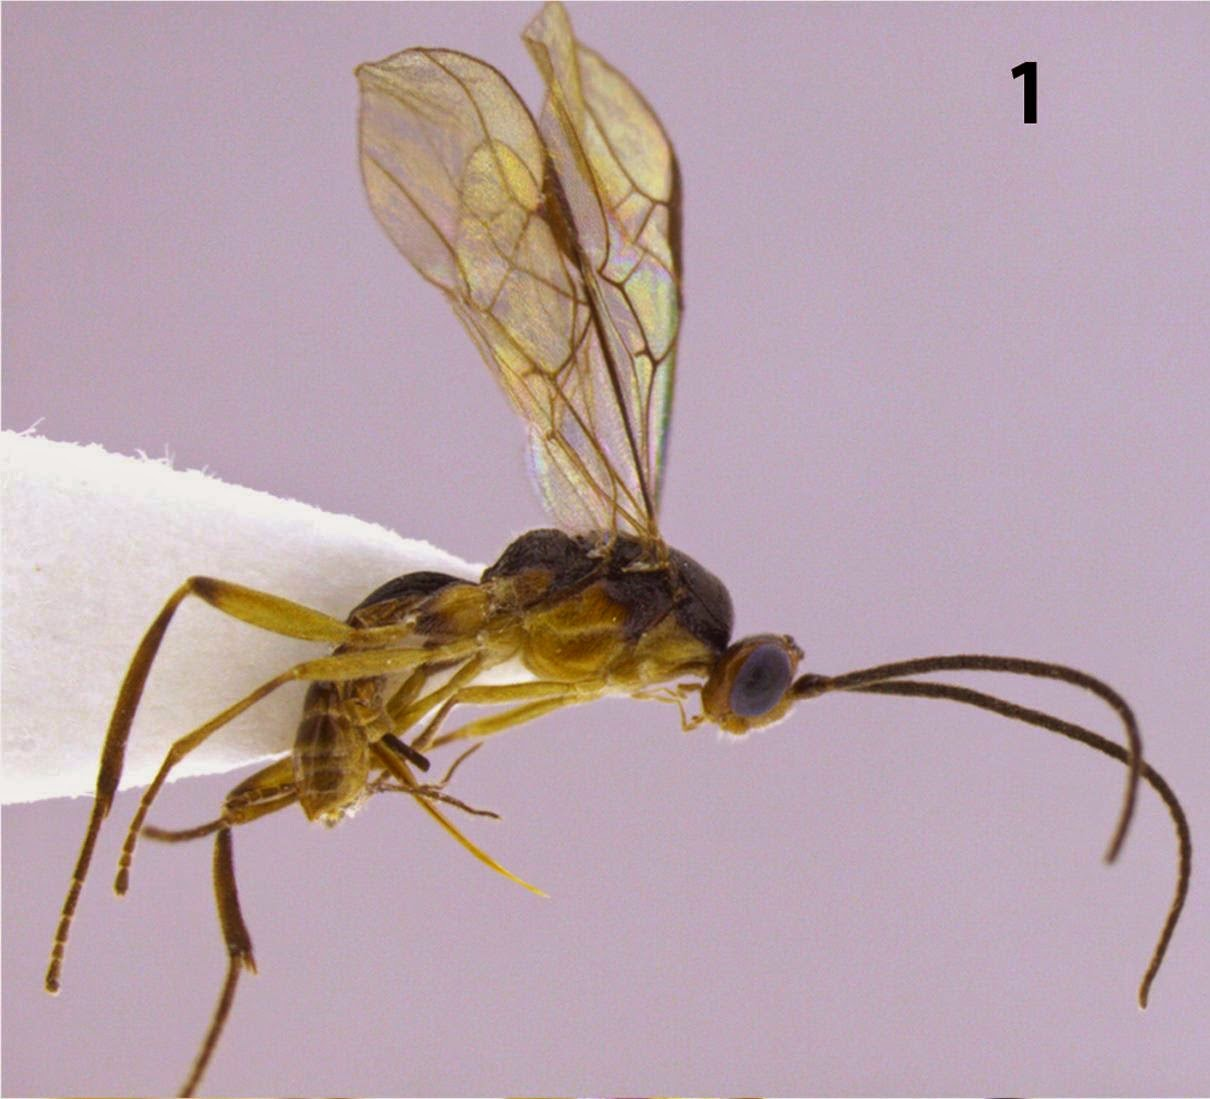 http://sciencythoughts.blogspot.co.uk/2014/03/three-new-species-of-braconid-wasps.html